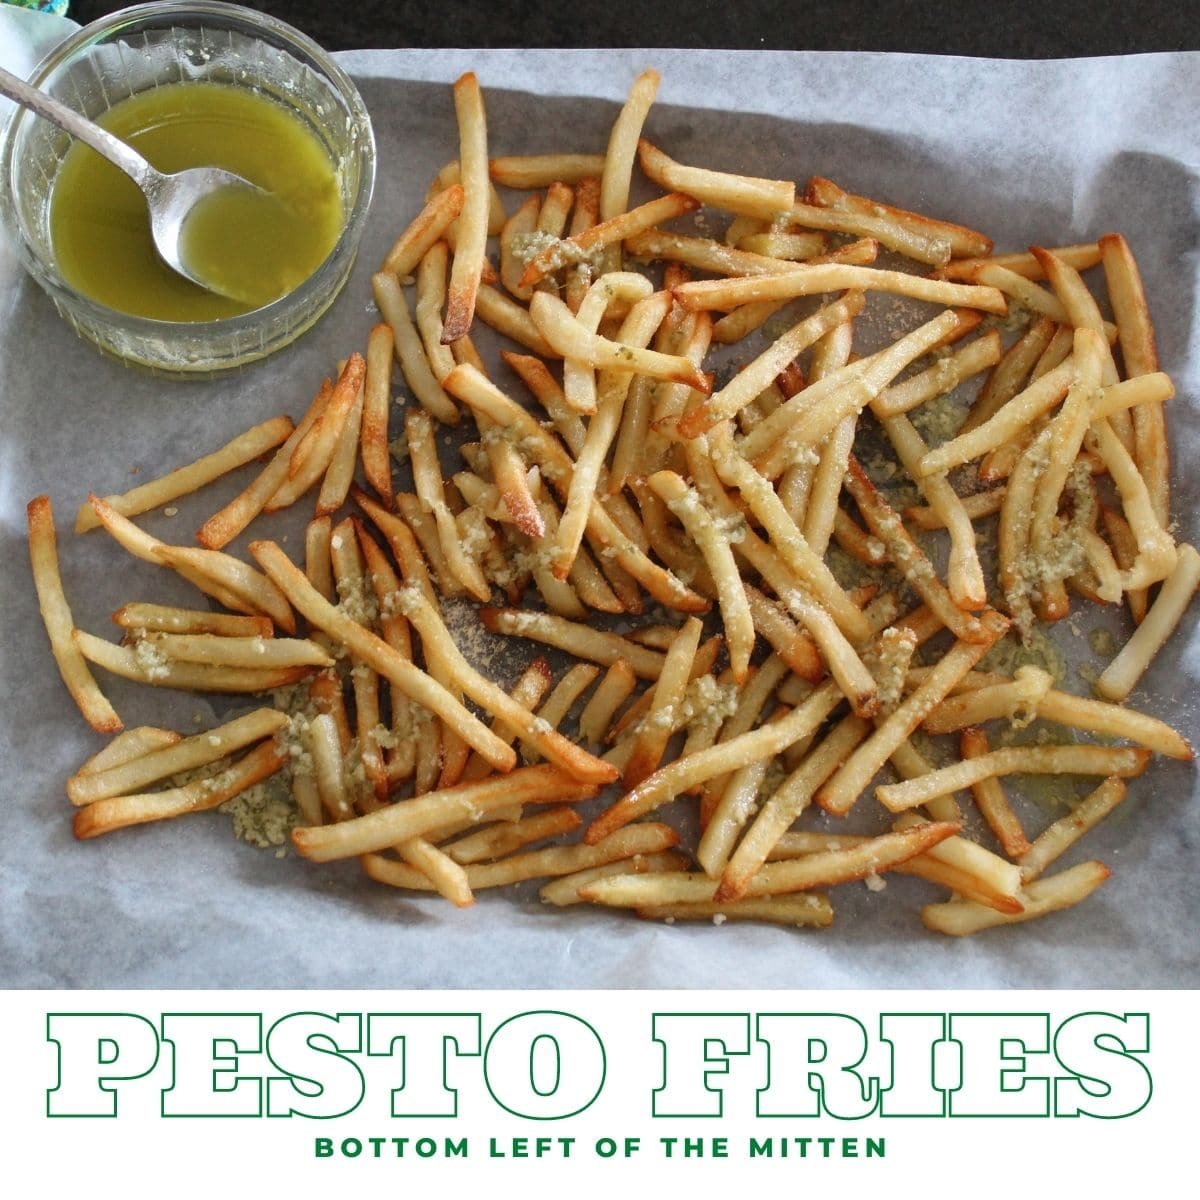 collage image of overhead shot of a pan of pesto fries with parchment paper underneath and a dish of pesto butter off to the side and descriptive text overlay.